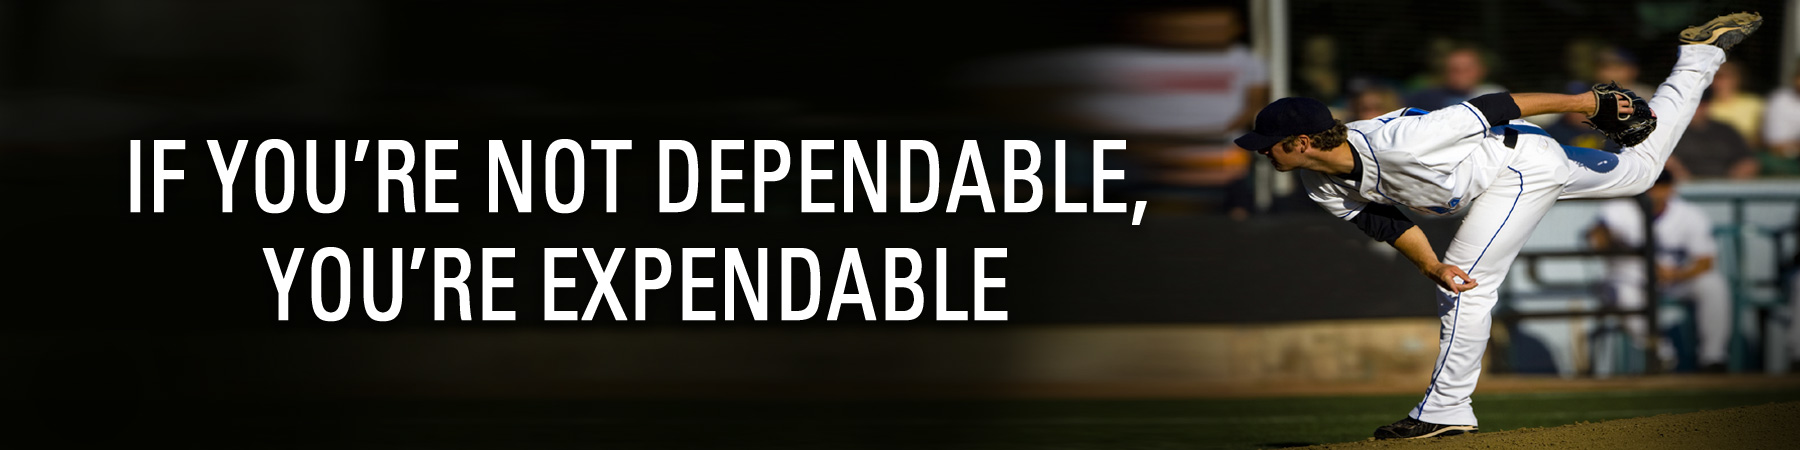 If You're Not Dependable, You're Expendable